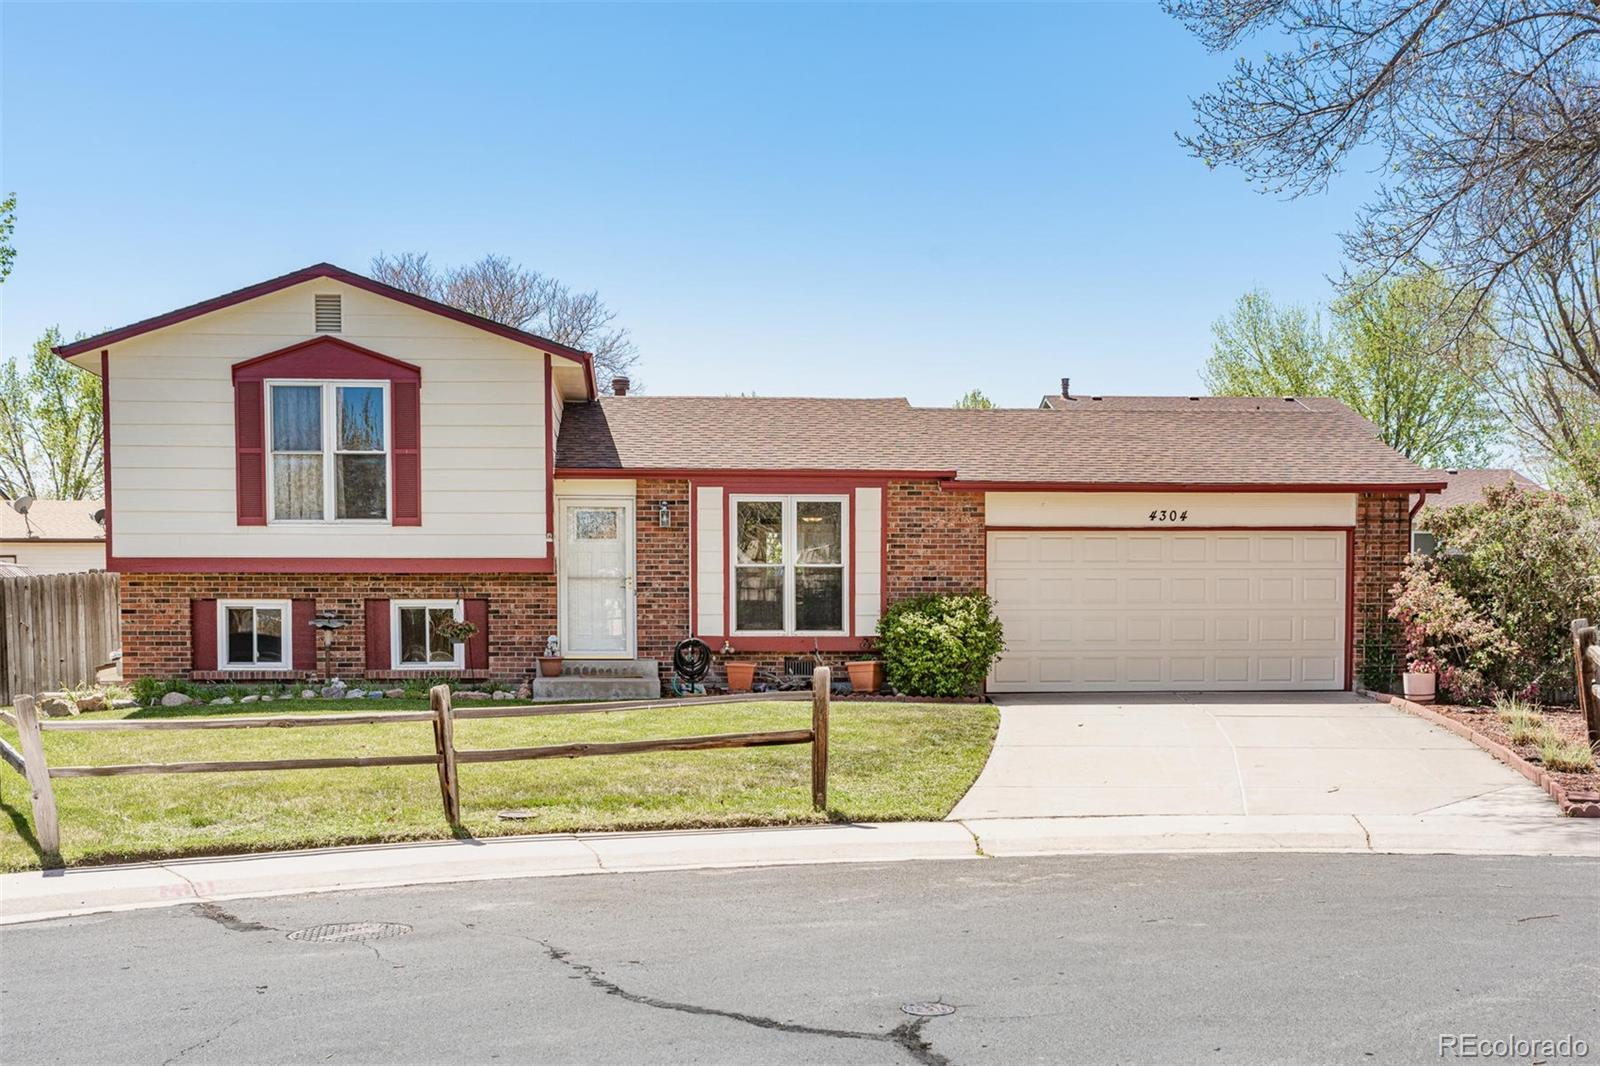 4304 E 92nd Court Property Photo - Thornton, CO real estate listing